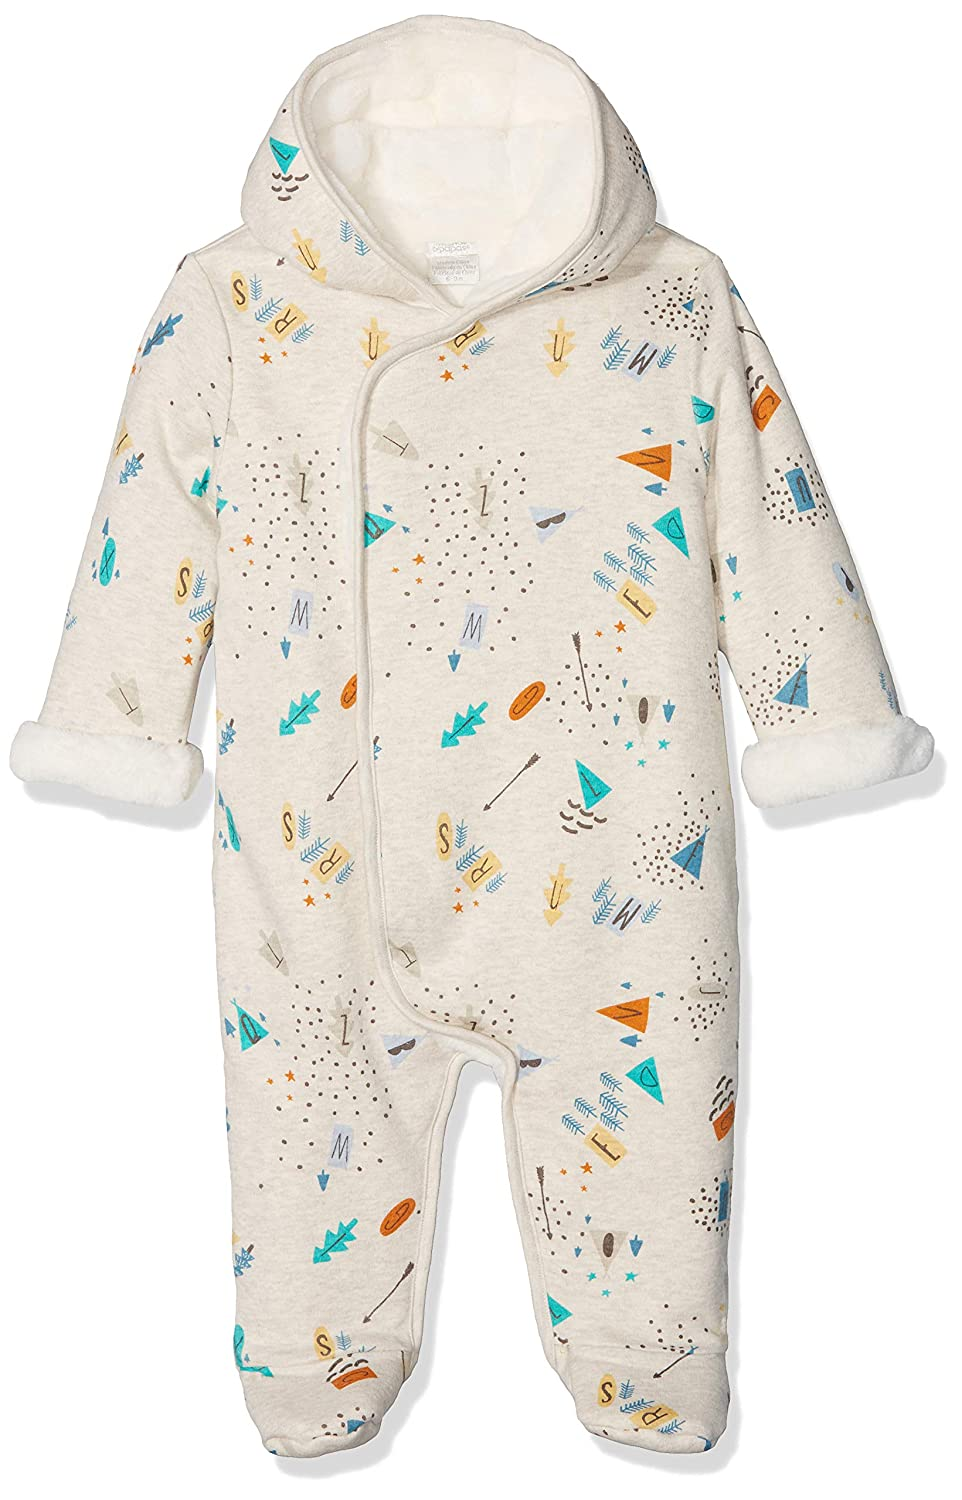 Mamas & Papas Baby Boys' Arrow Print Pramsuit Snowsuit Mamas and Papas